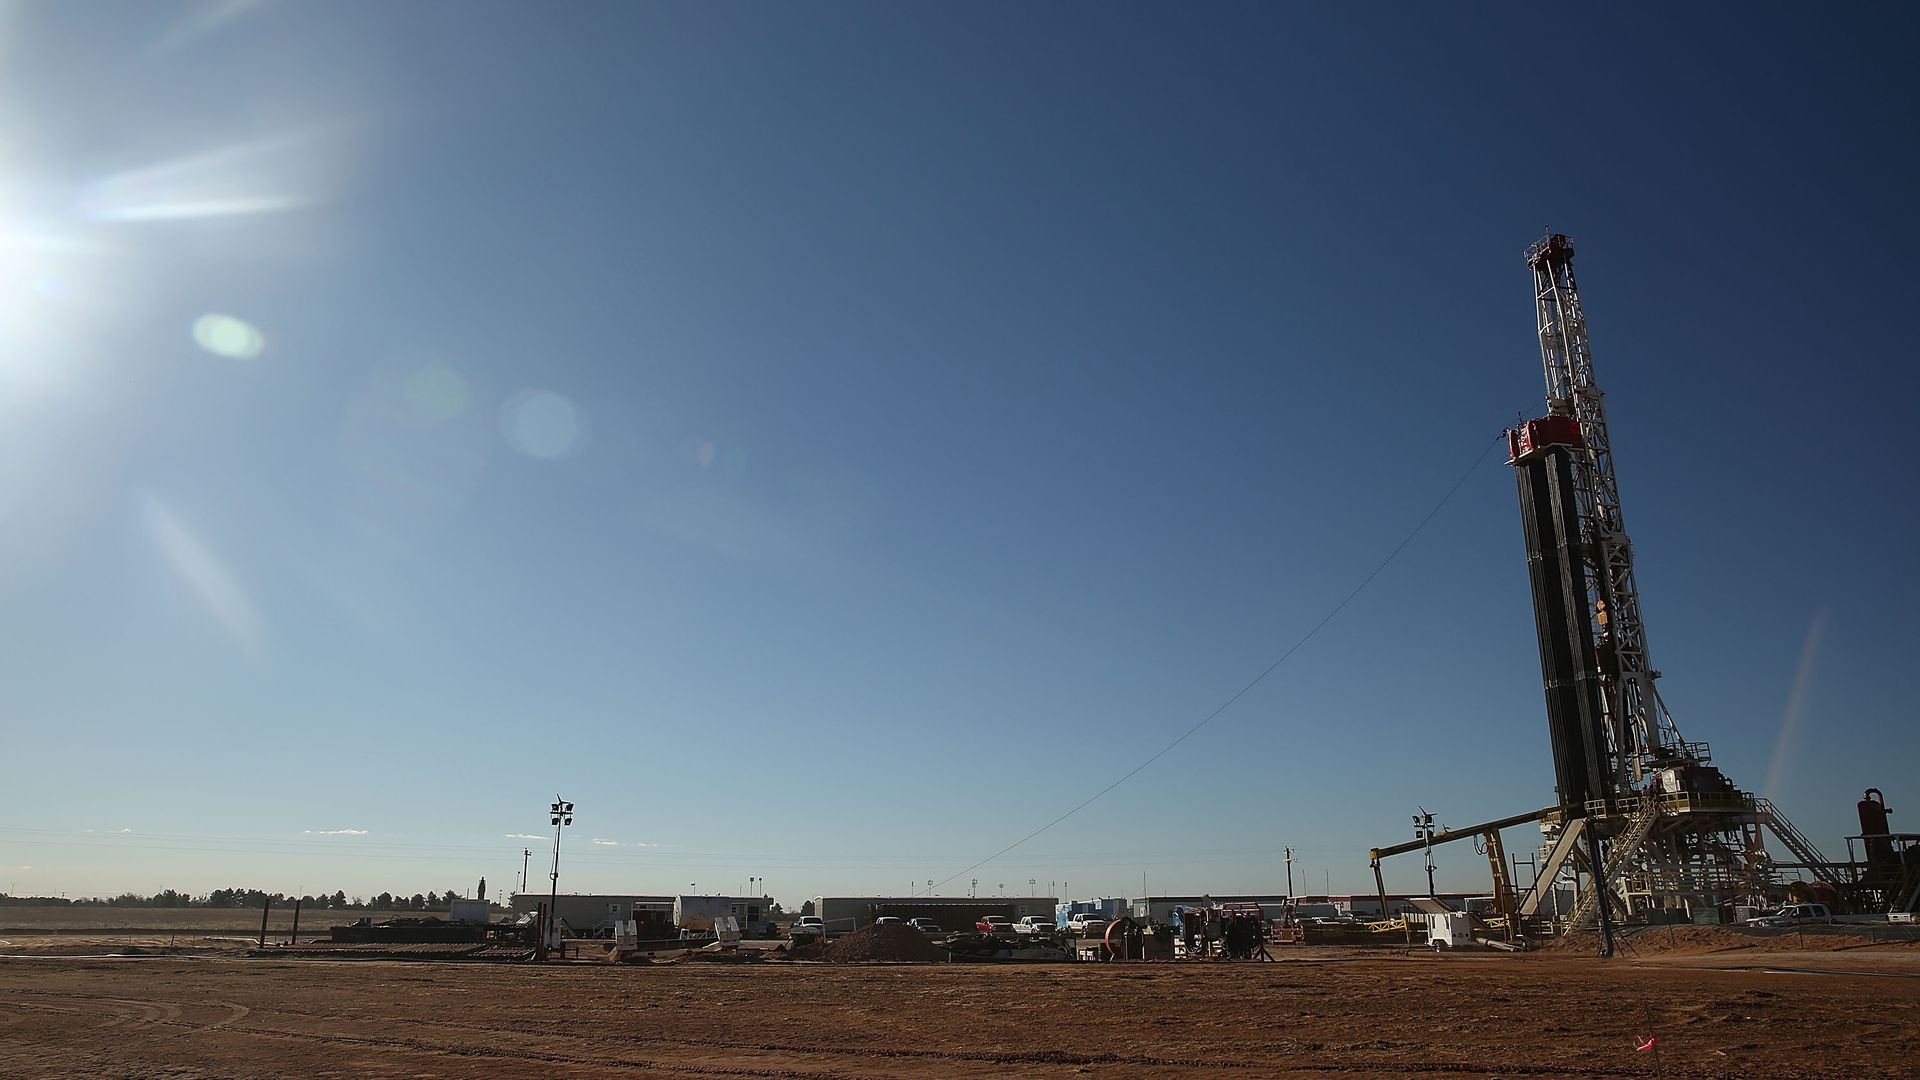 A fracking site in Midland, Texas.